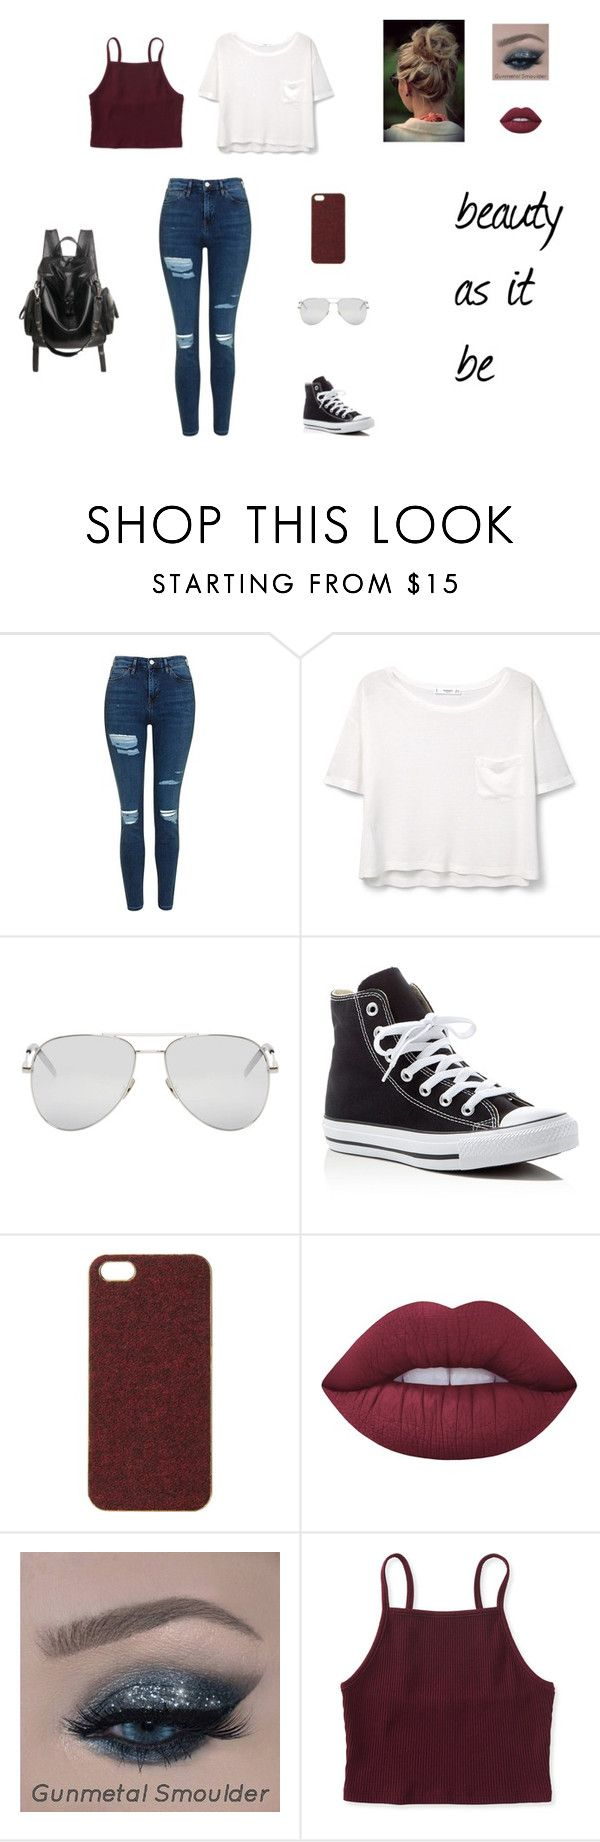 """""""beauty as it be"""" by claire-patterson-02 on Polyvore featuring Topshop, MANGO, Yves Saint Laurent, Converse, Scotch & Soda, Lime Crime, Aéropostale, casual, Original and bergundy"""